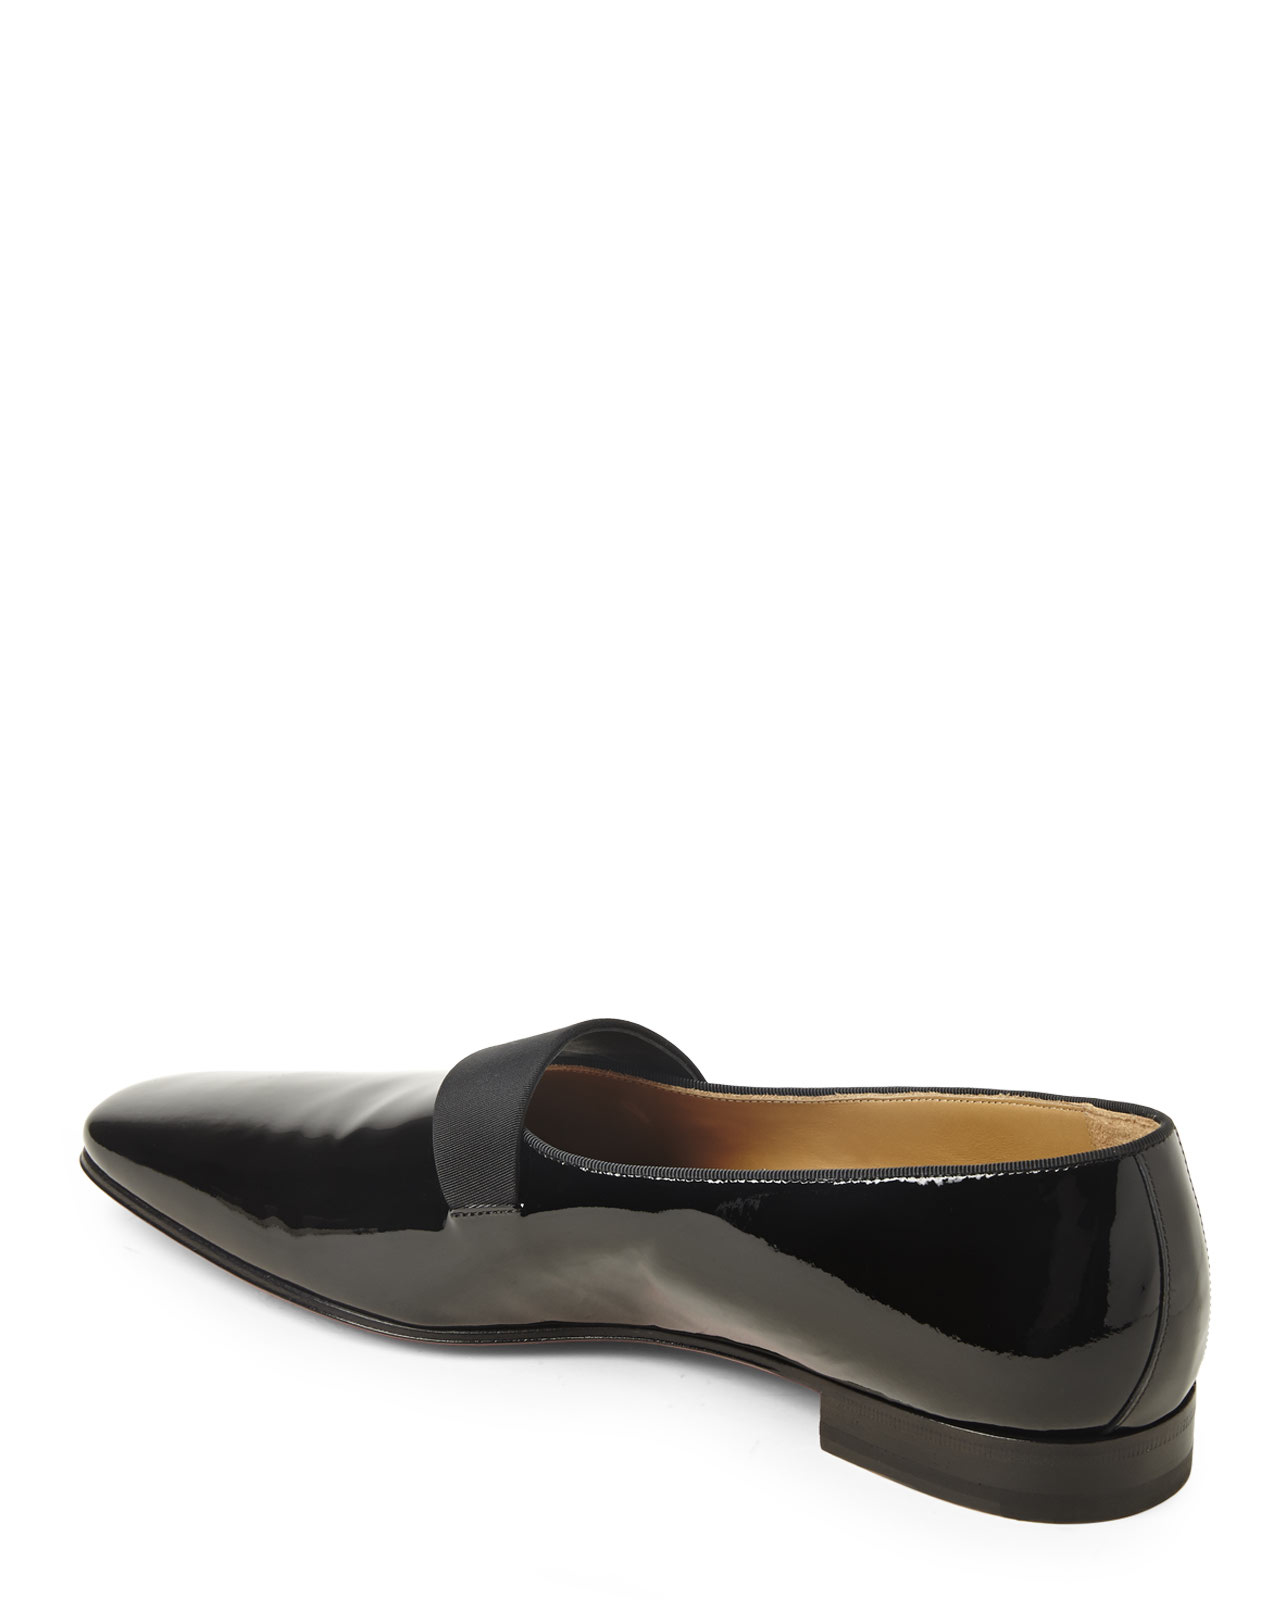 Christian louboutin Black Patent Smoker Flats in Black for Men | Lyst